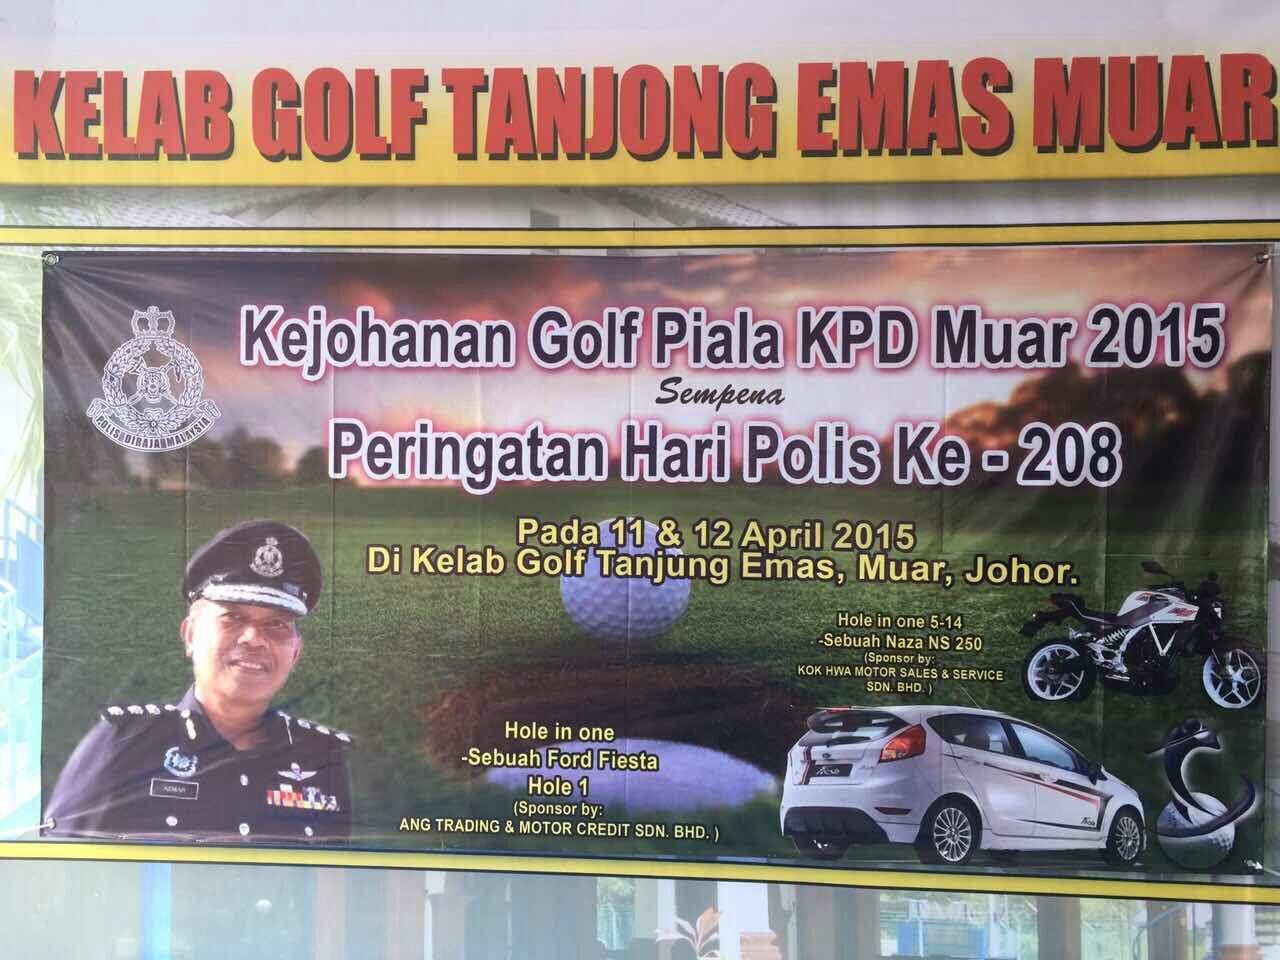 Muar Golf Tournament on April 10&11